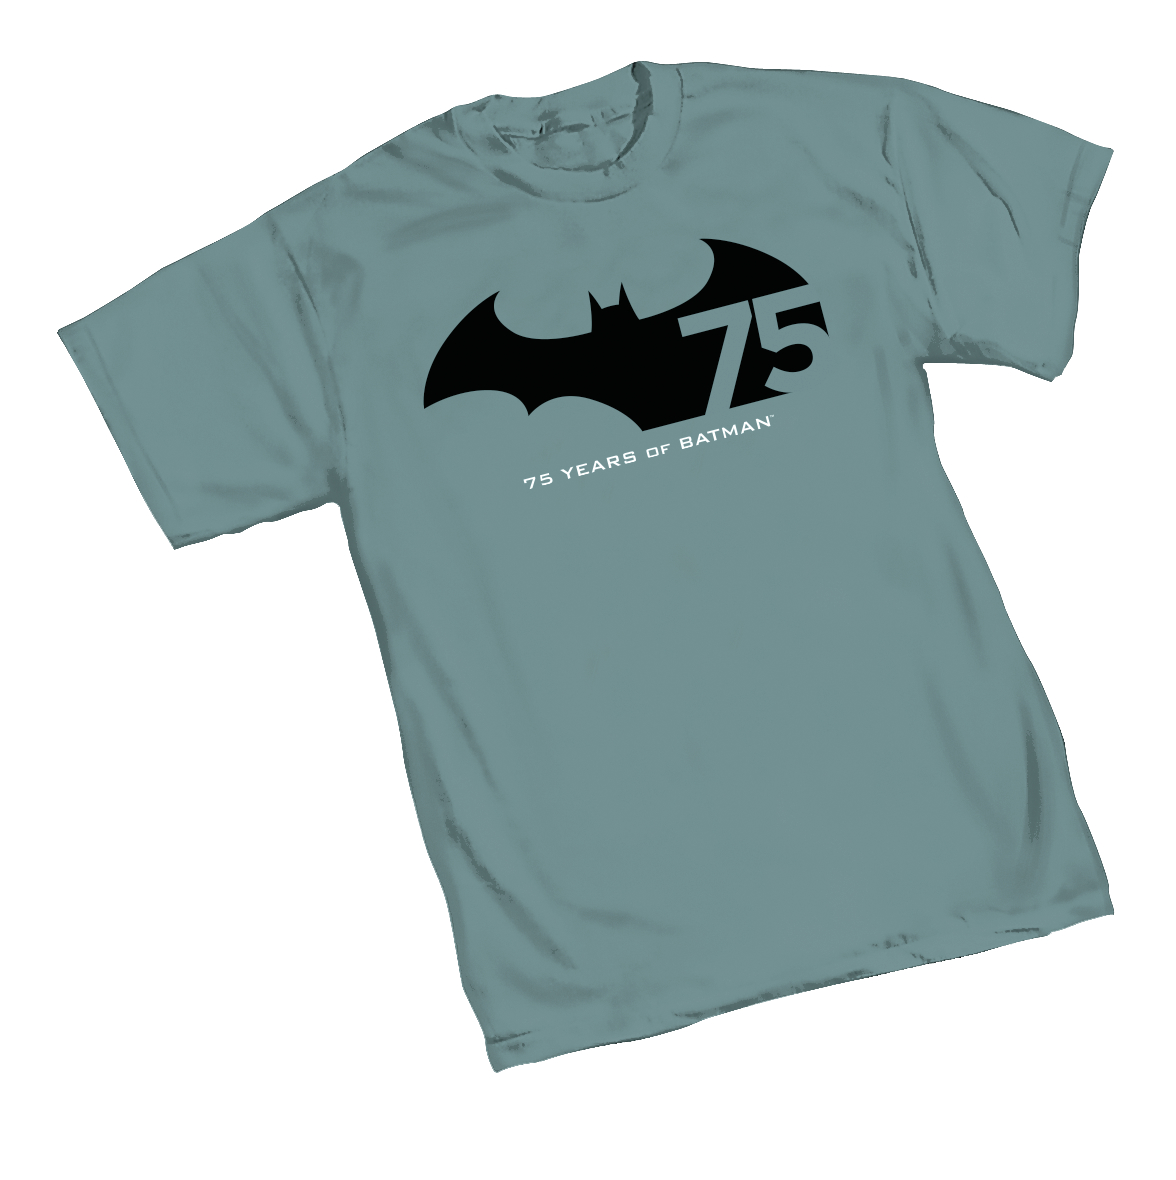 BATMAN 75TH ANNIVERSARY LOGO T/S LG